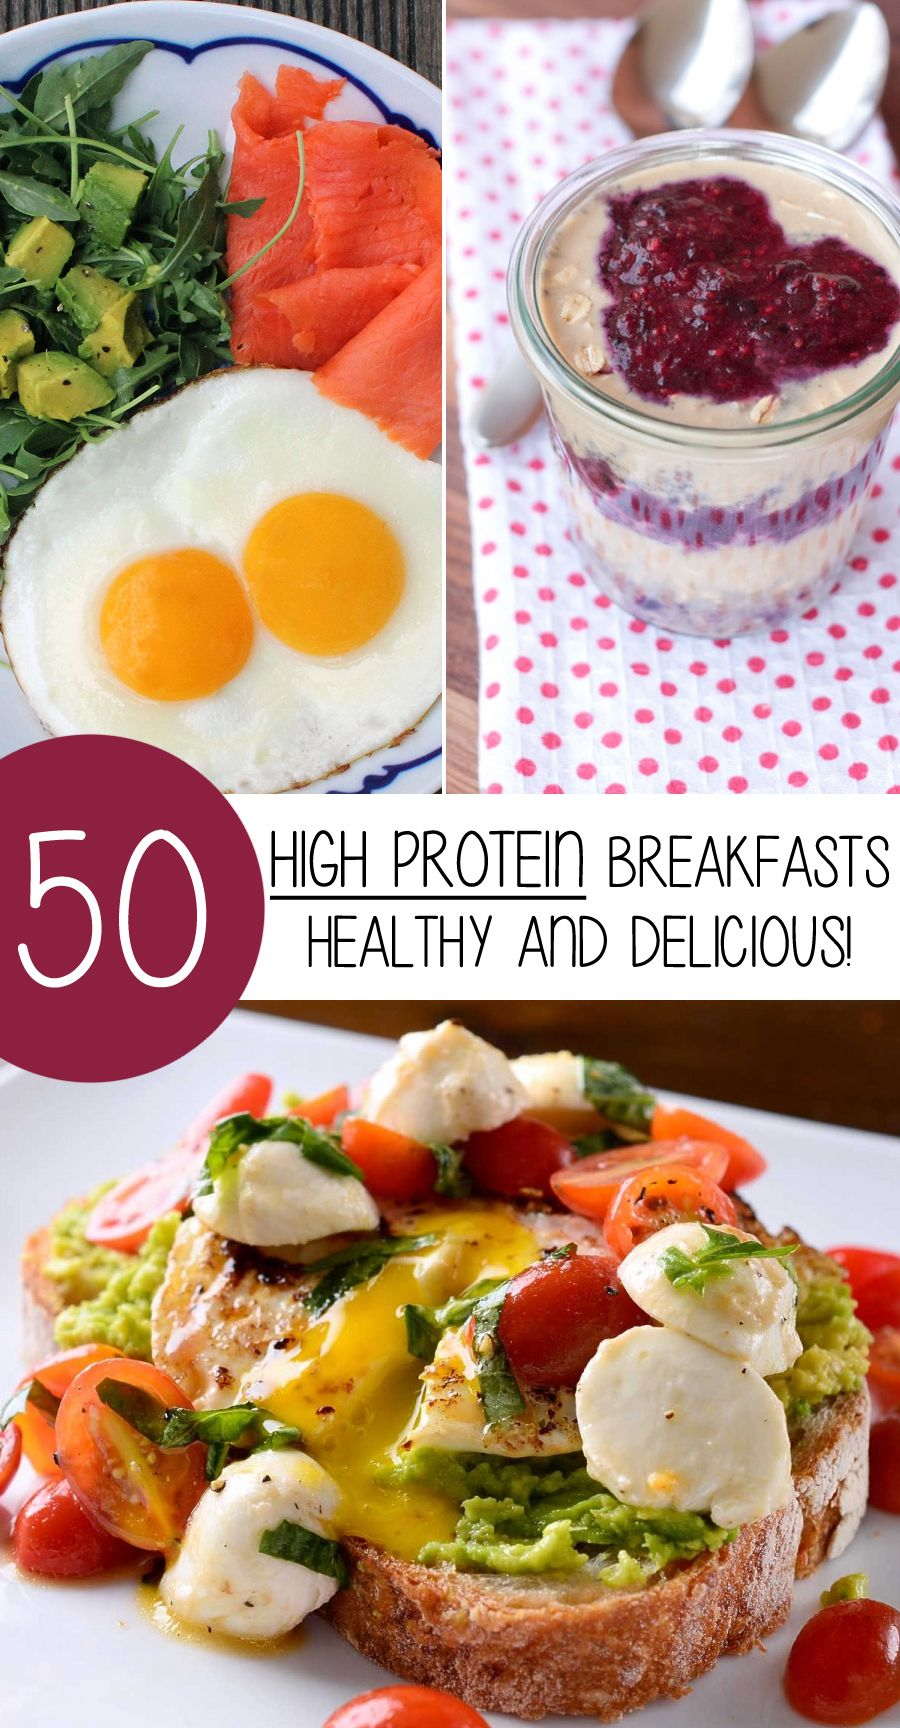 34 Easy High-Protein Breakfasts Thatll Help You Lose Weight